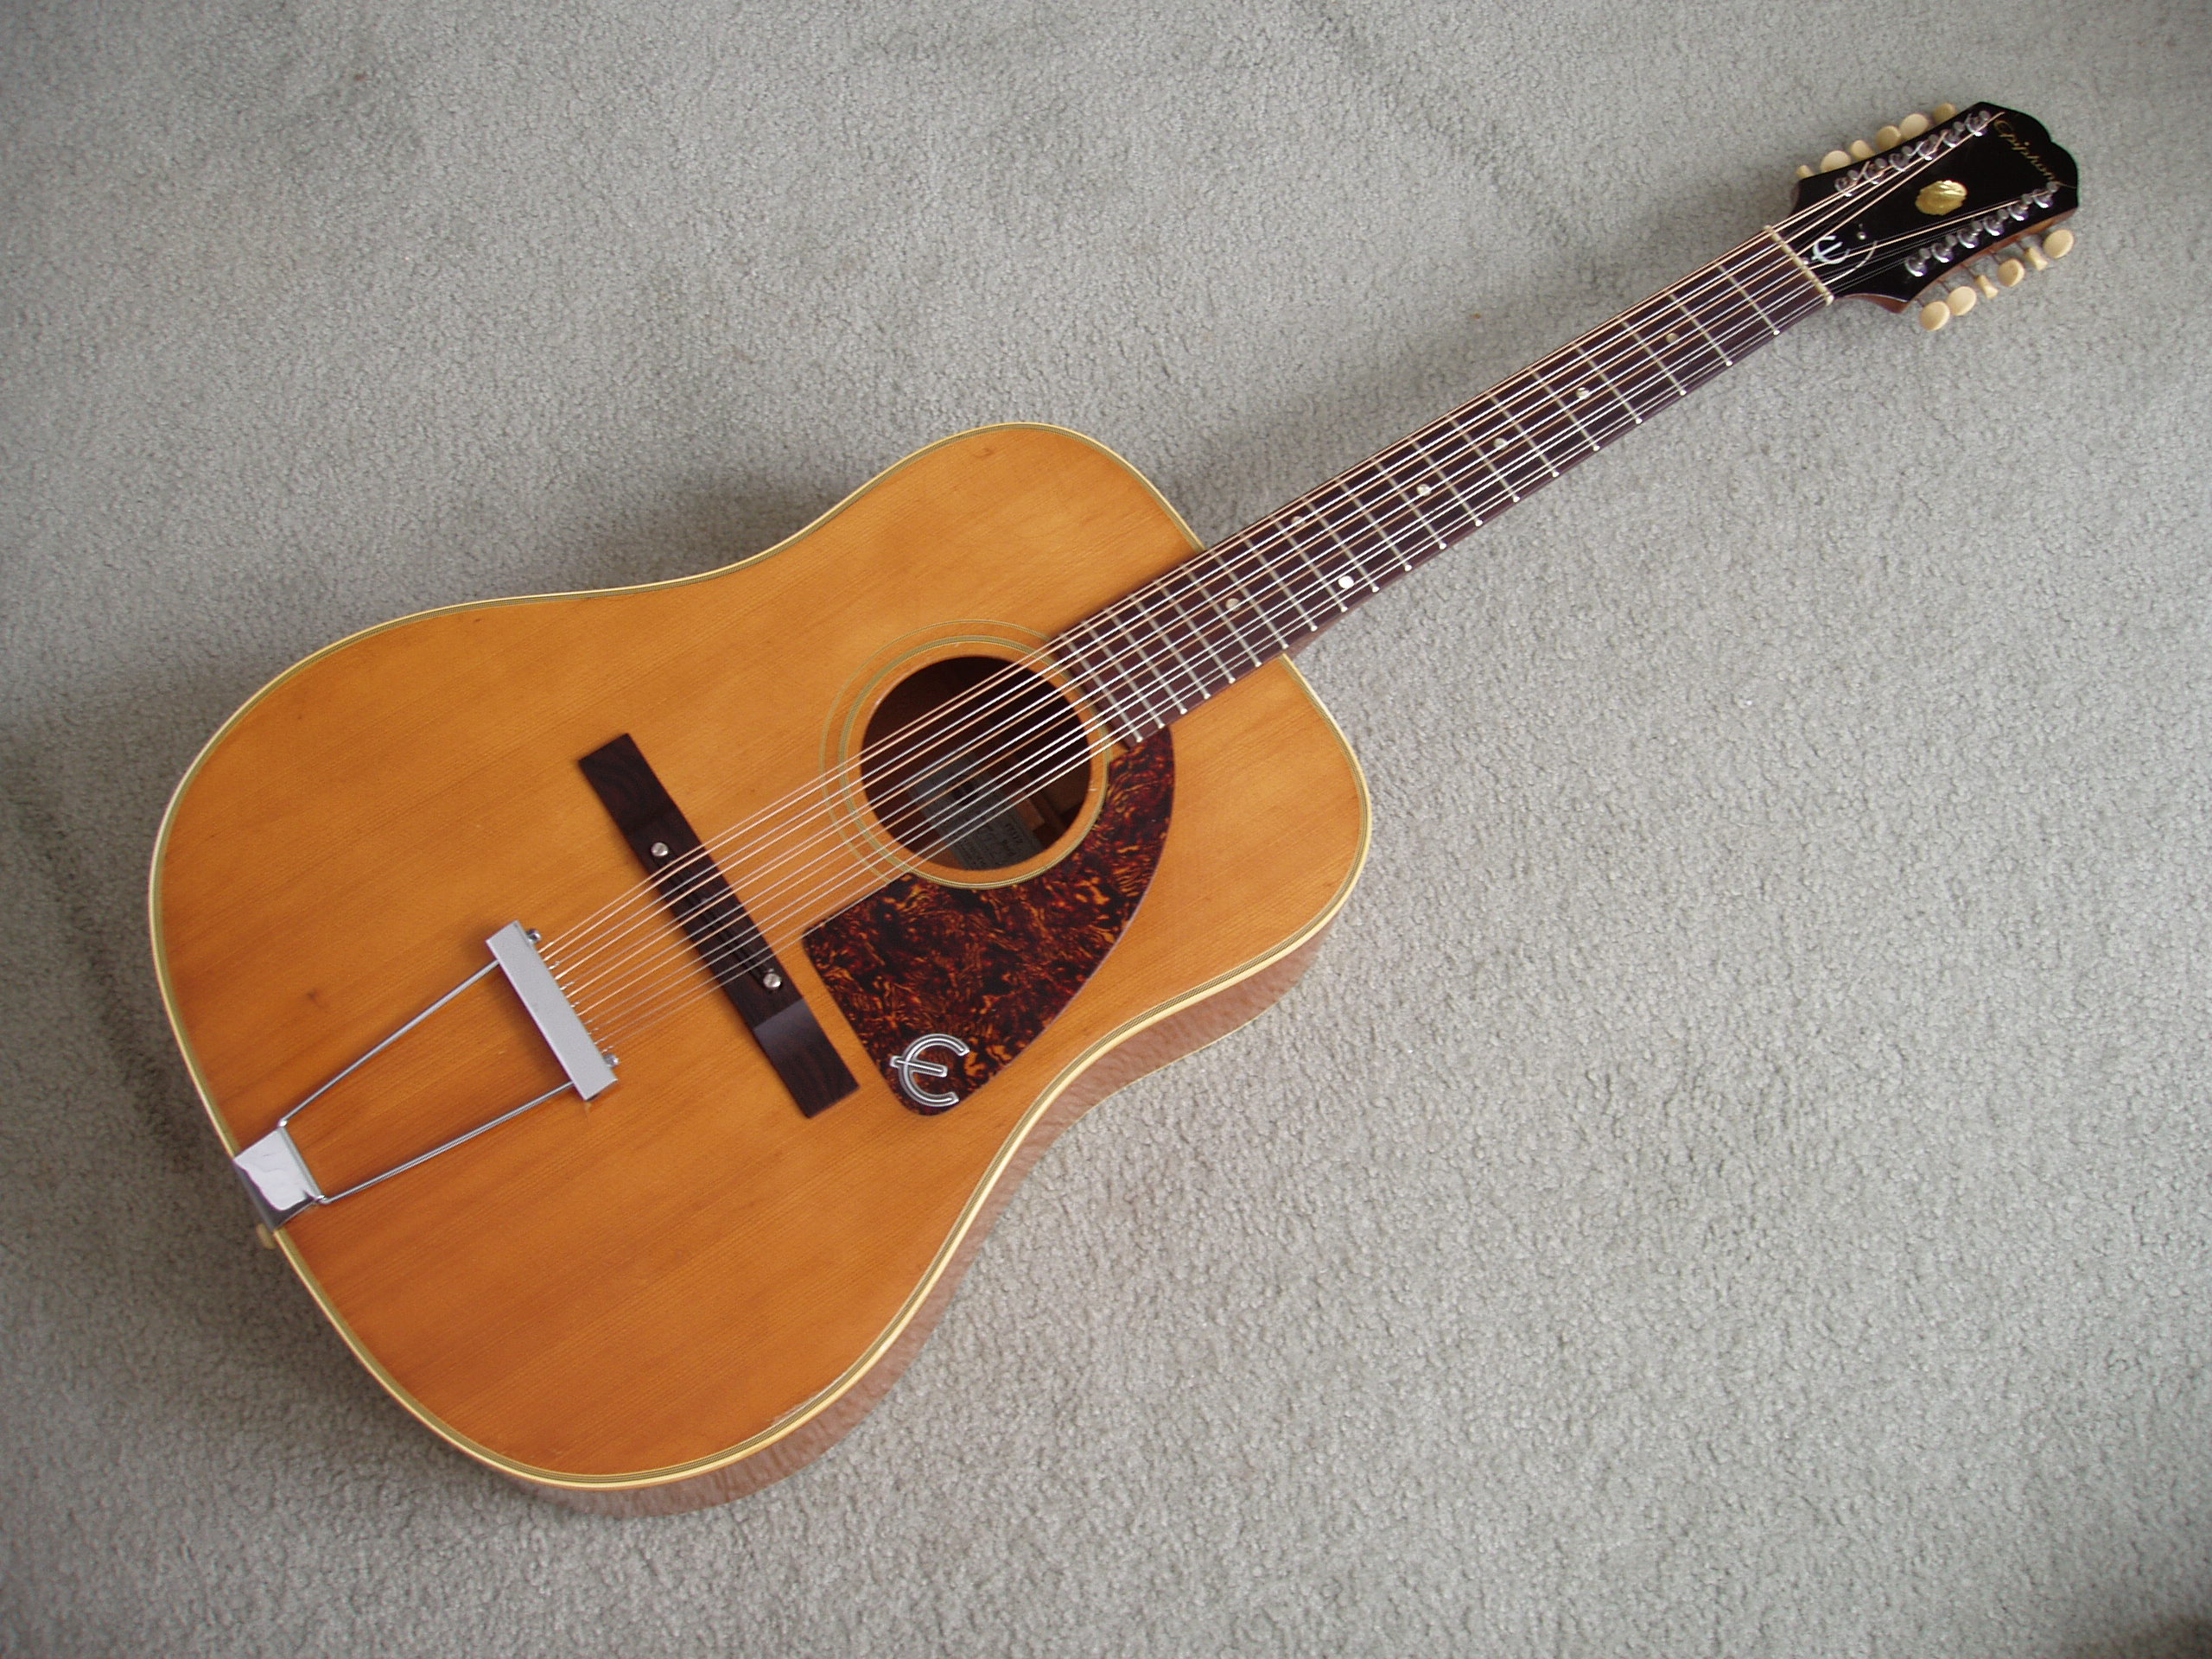 Yamaha Youth Guitar